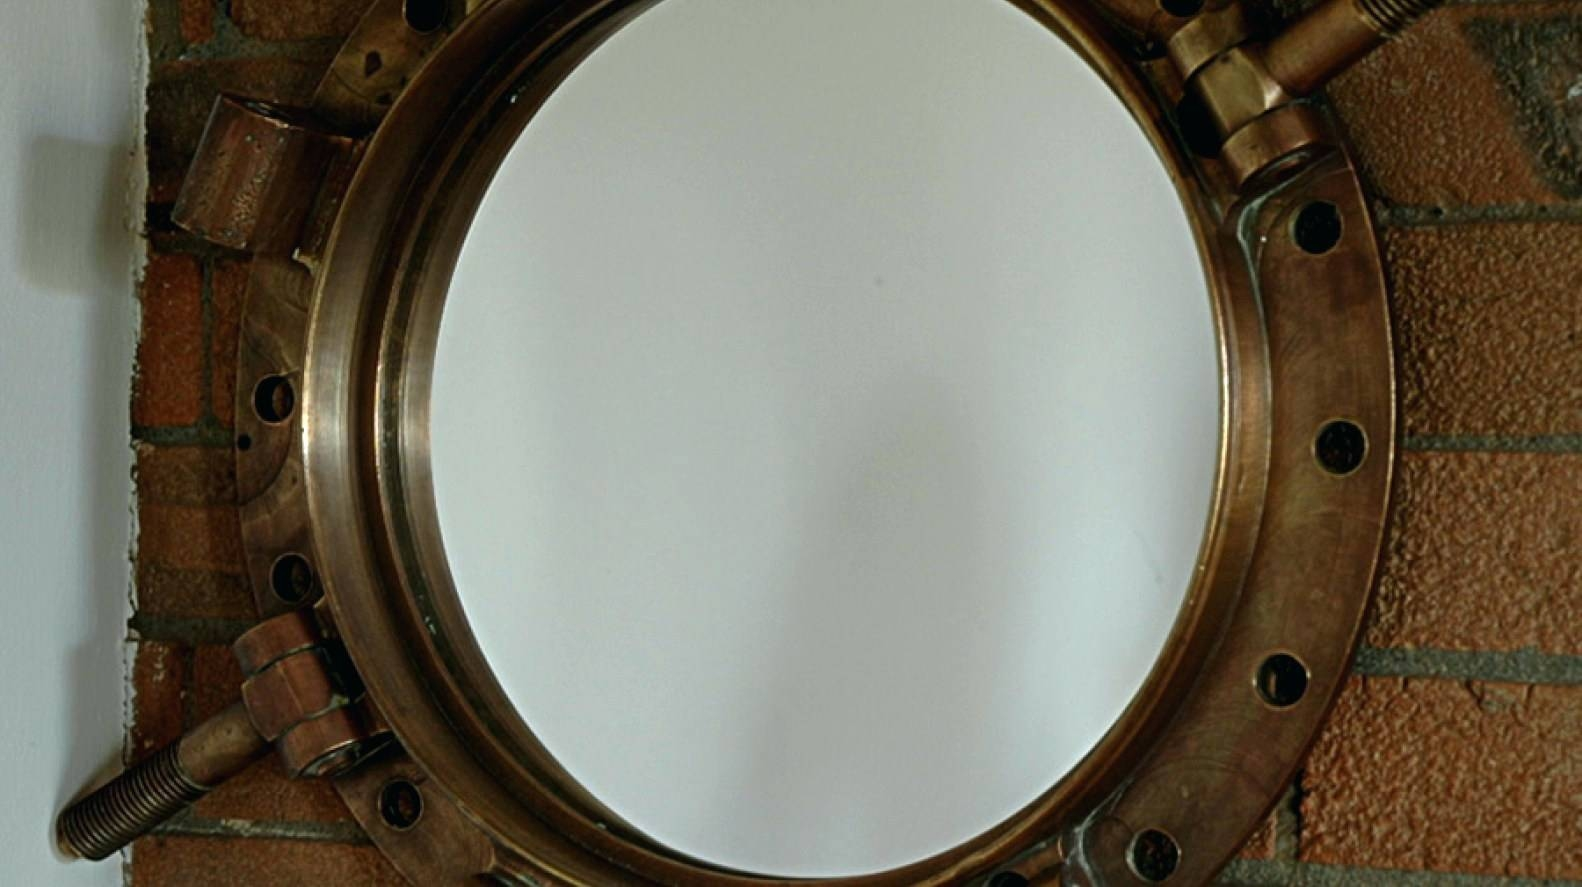 Wall Mirrors ~ Large Round Convex Wall Mirror Round Decorative with Large Round Convex Mirrors (Image 15 of 15)